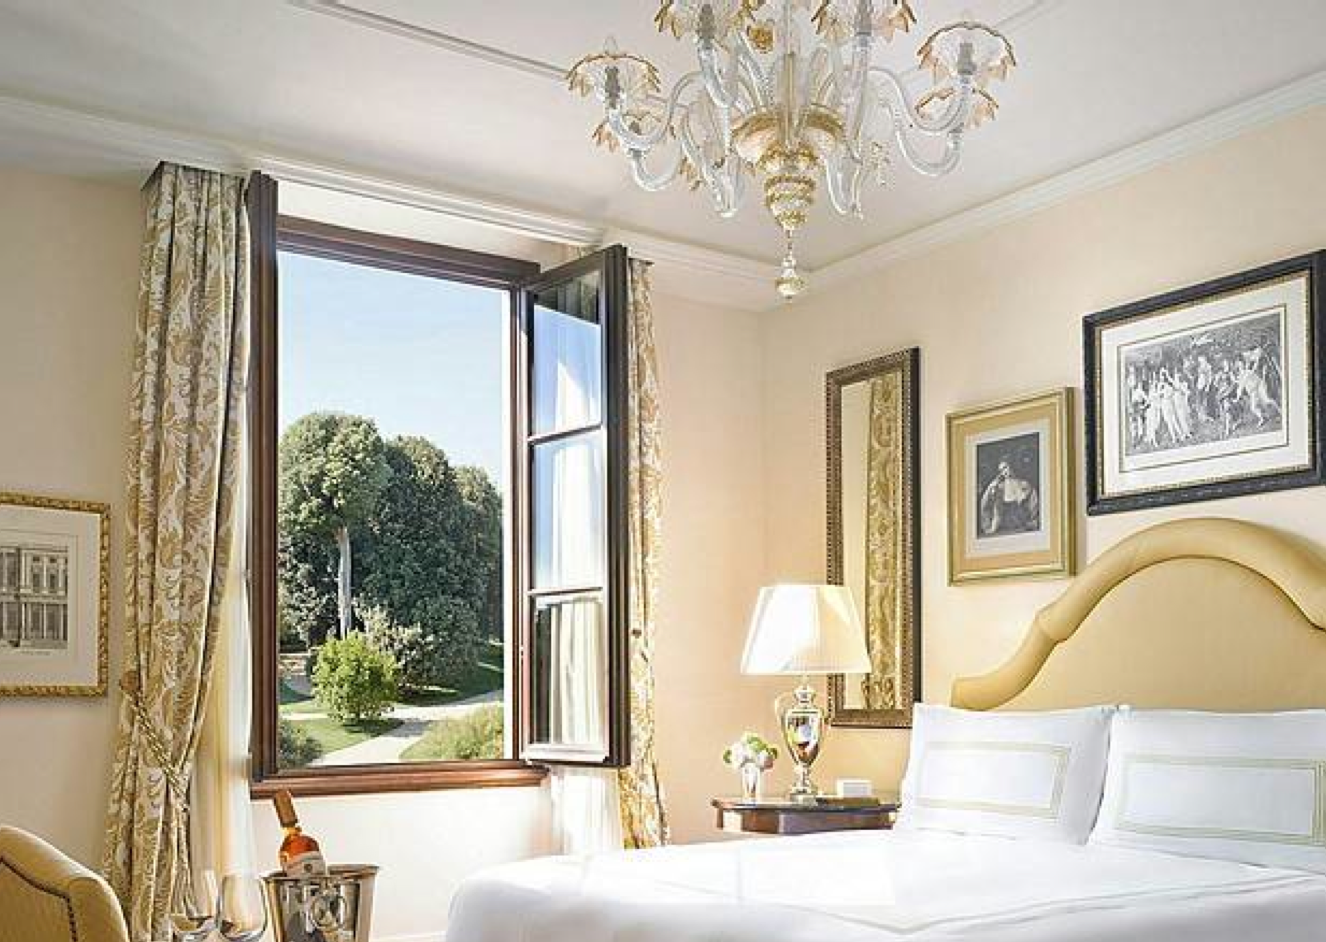 Four seasons hotel florence italy camera da letto for Design hotel firenze